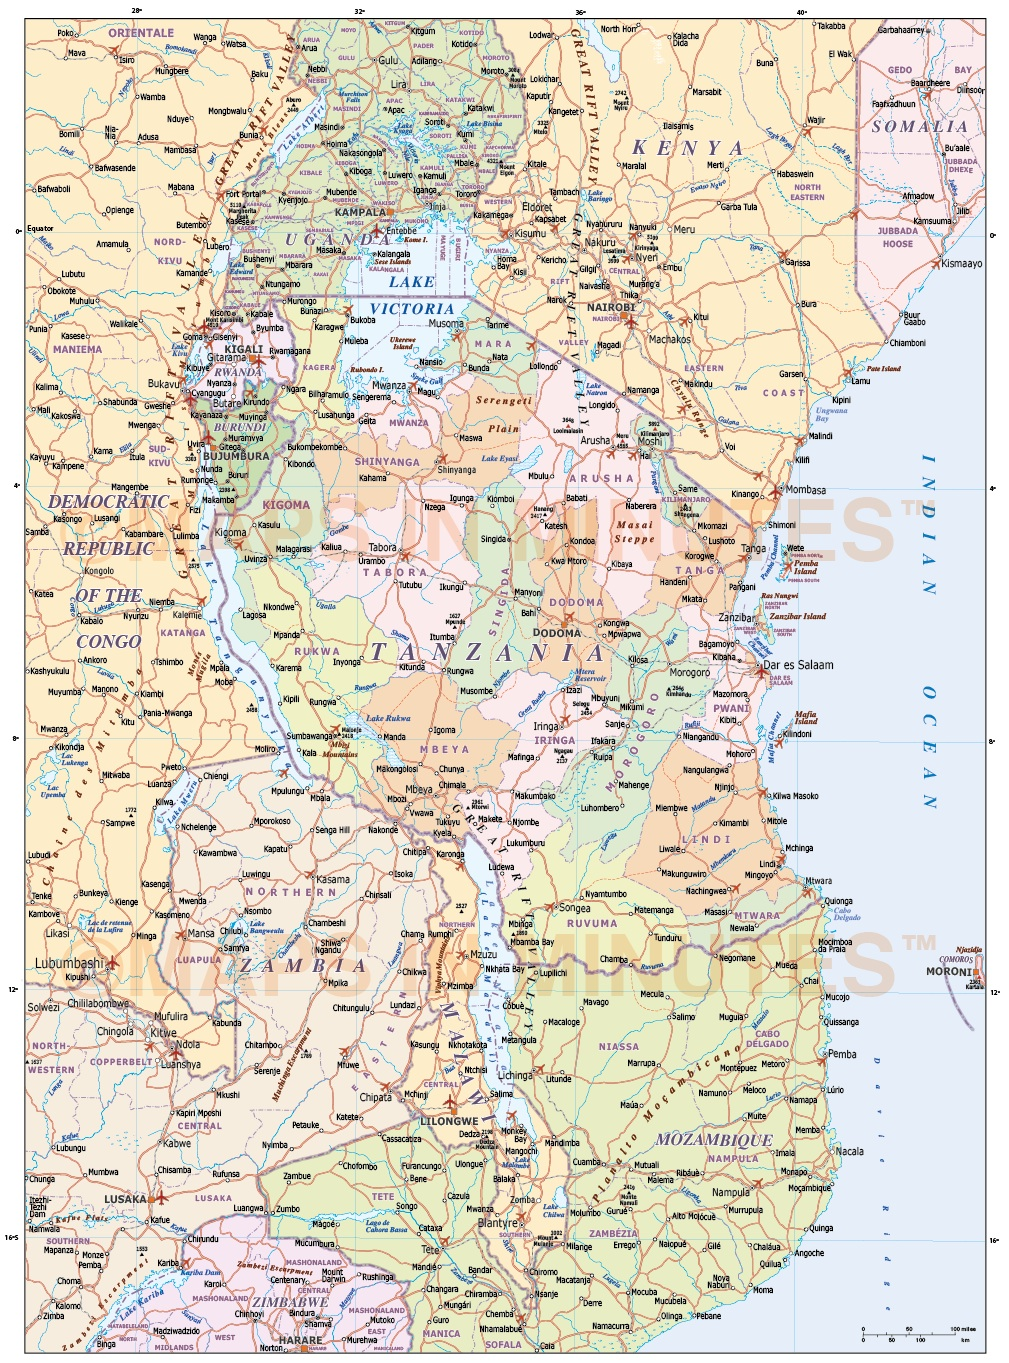 Tanzania Political Map.Tanzania Digital Vector Political Road Rail Map With Land And